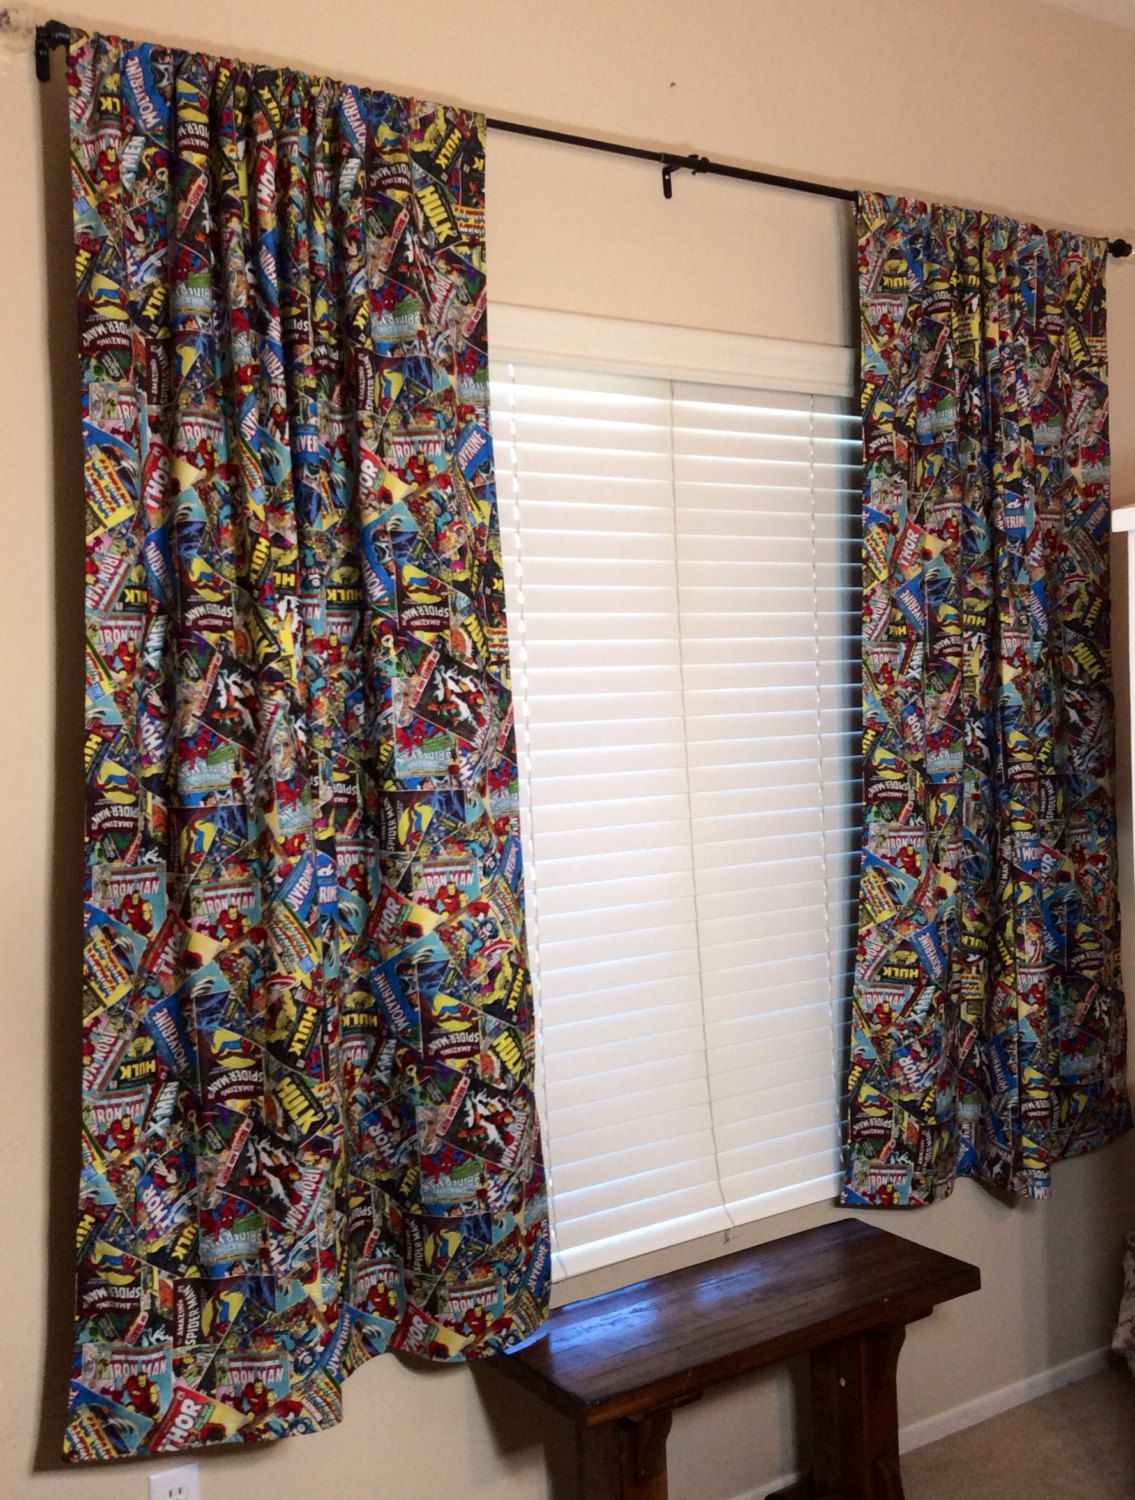 Marvel retro comic book curtains